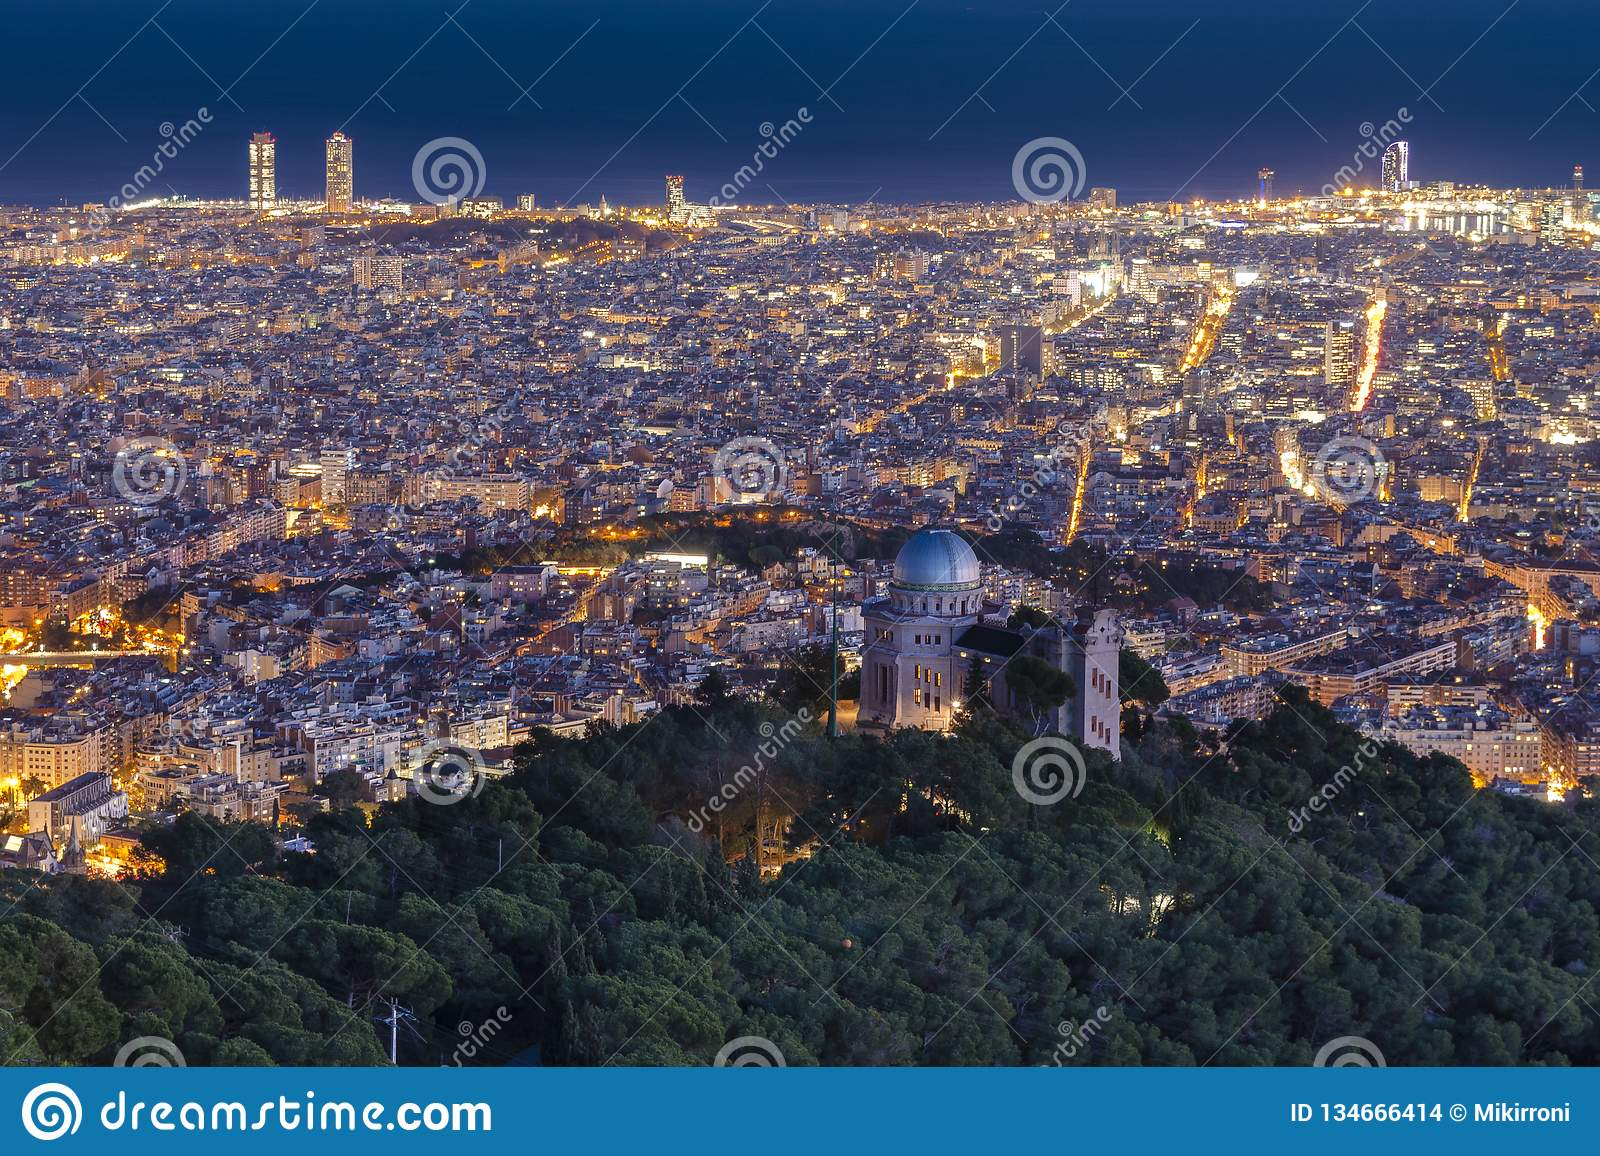 View of the city at night, Barcelona, Spain